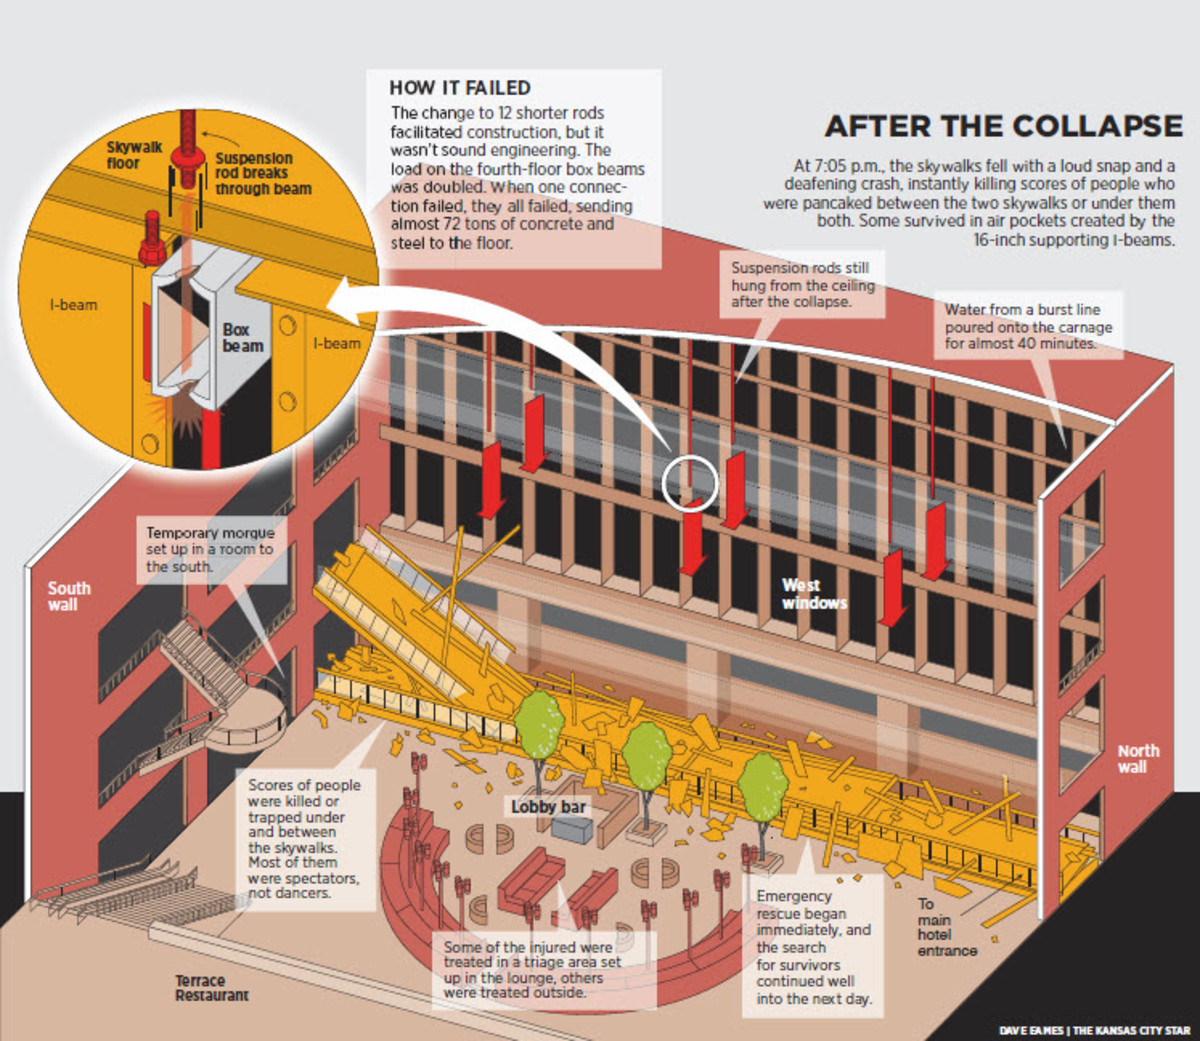 Illustration after collapse from commandsafety.com website